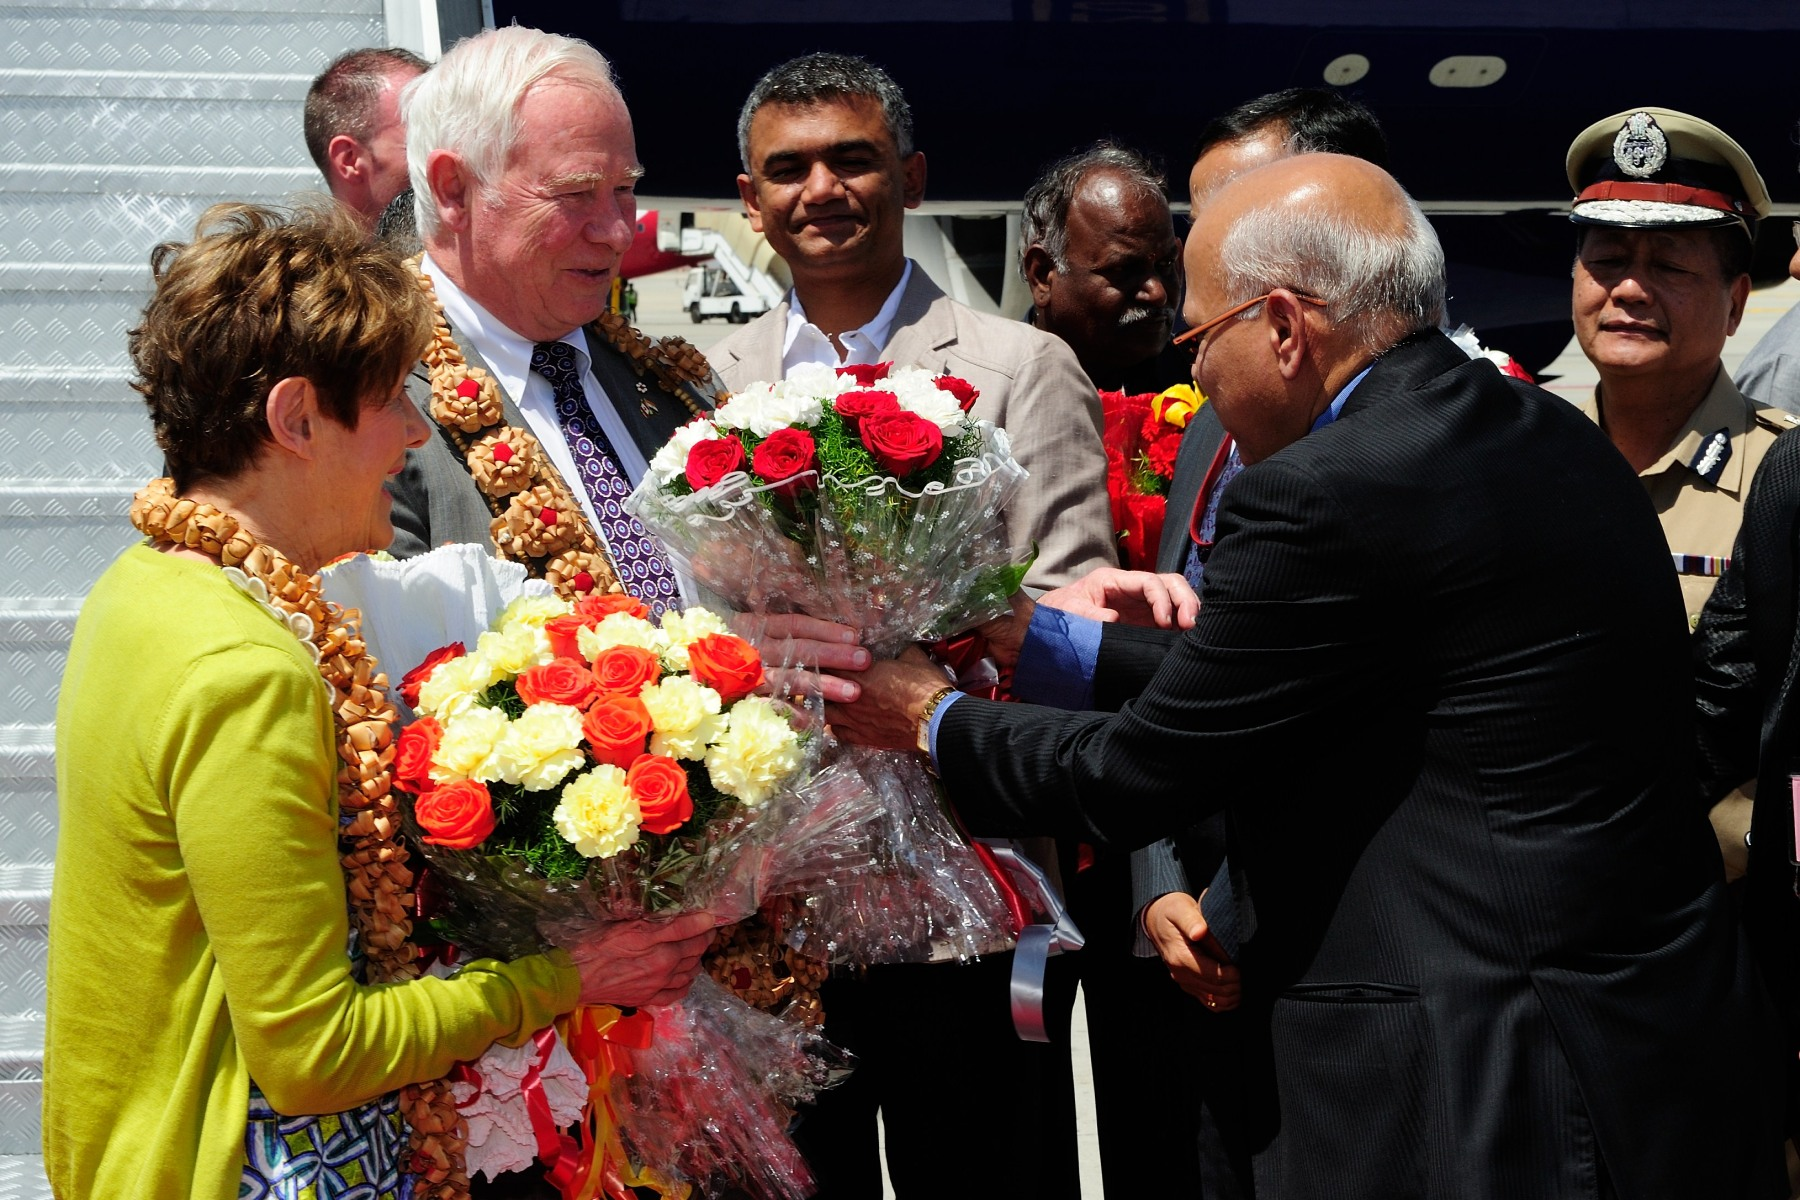 Upon their arrival in Bangalore, Their Excellencies were welcomed by representatives of the Government of Karnataka.